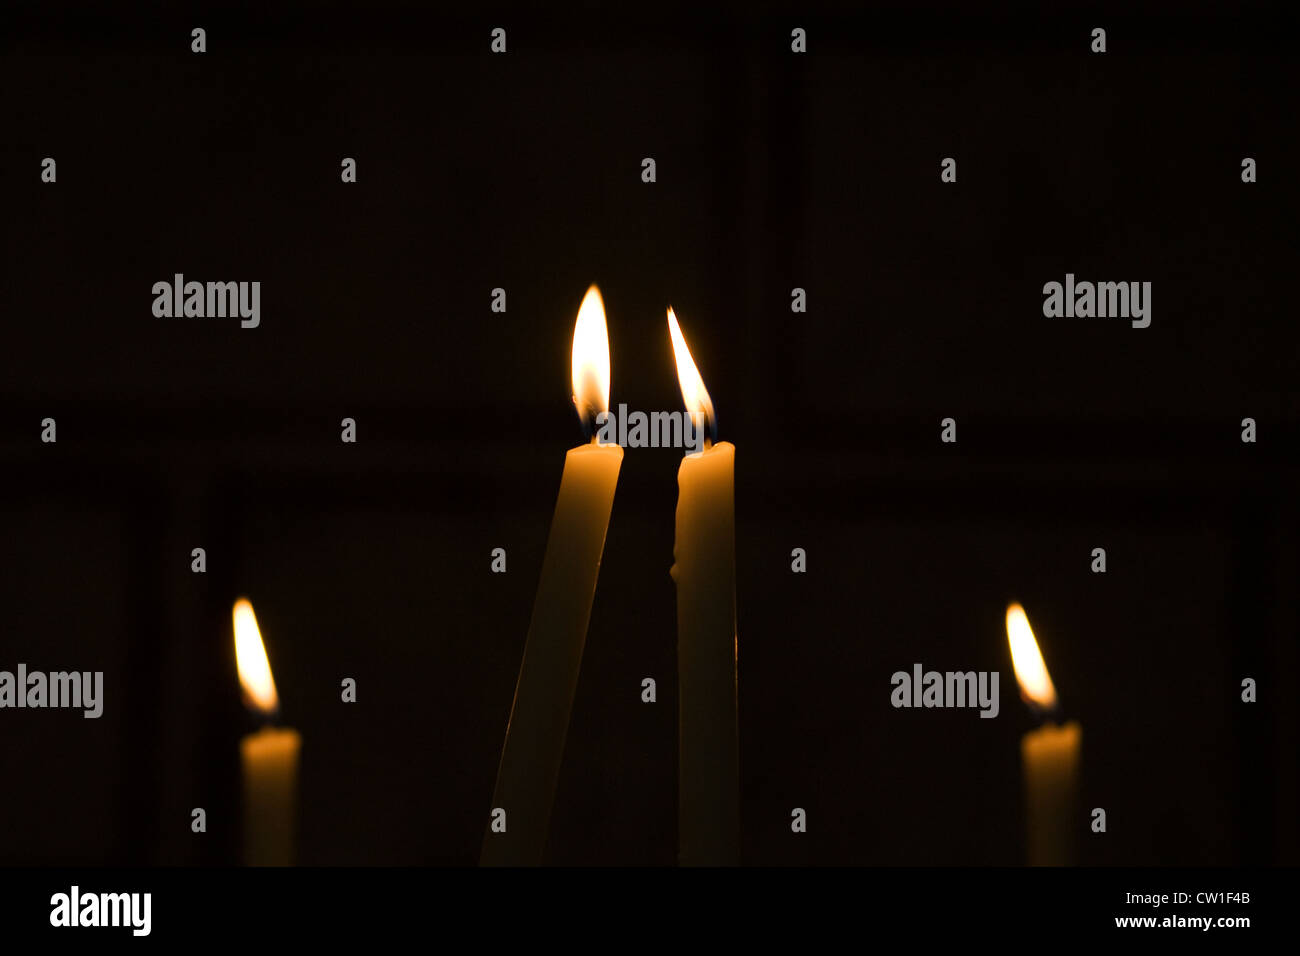 Four candles in the darkness. - Stock Image